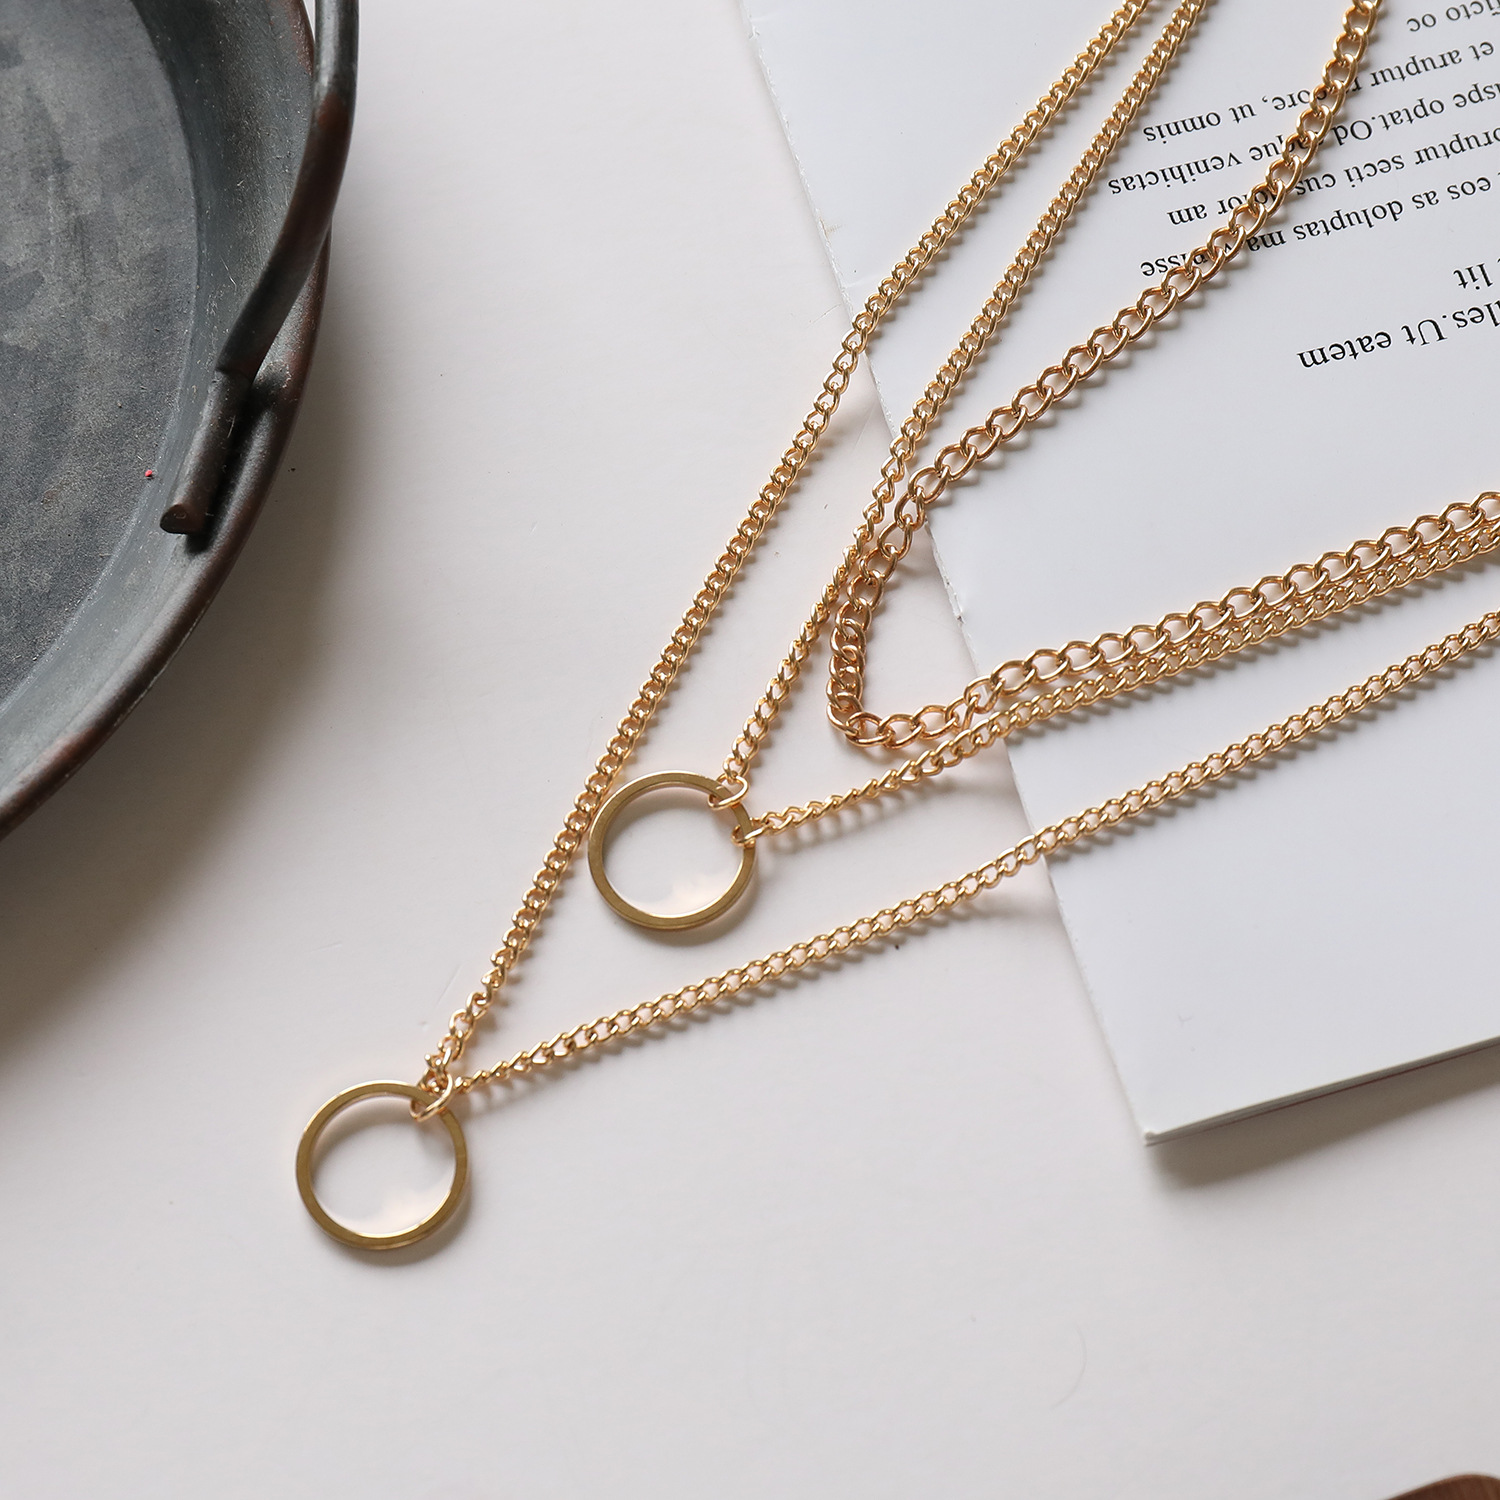 Alloy Circles Pendant Necklace for Women Gold Silver Color Layered Necklaces Female 2020 Fashion Jewelry Clavicle Chain New